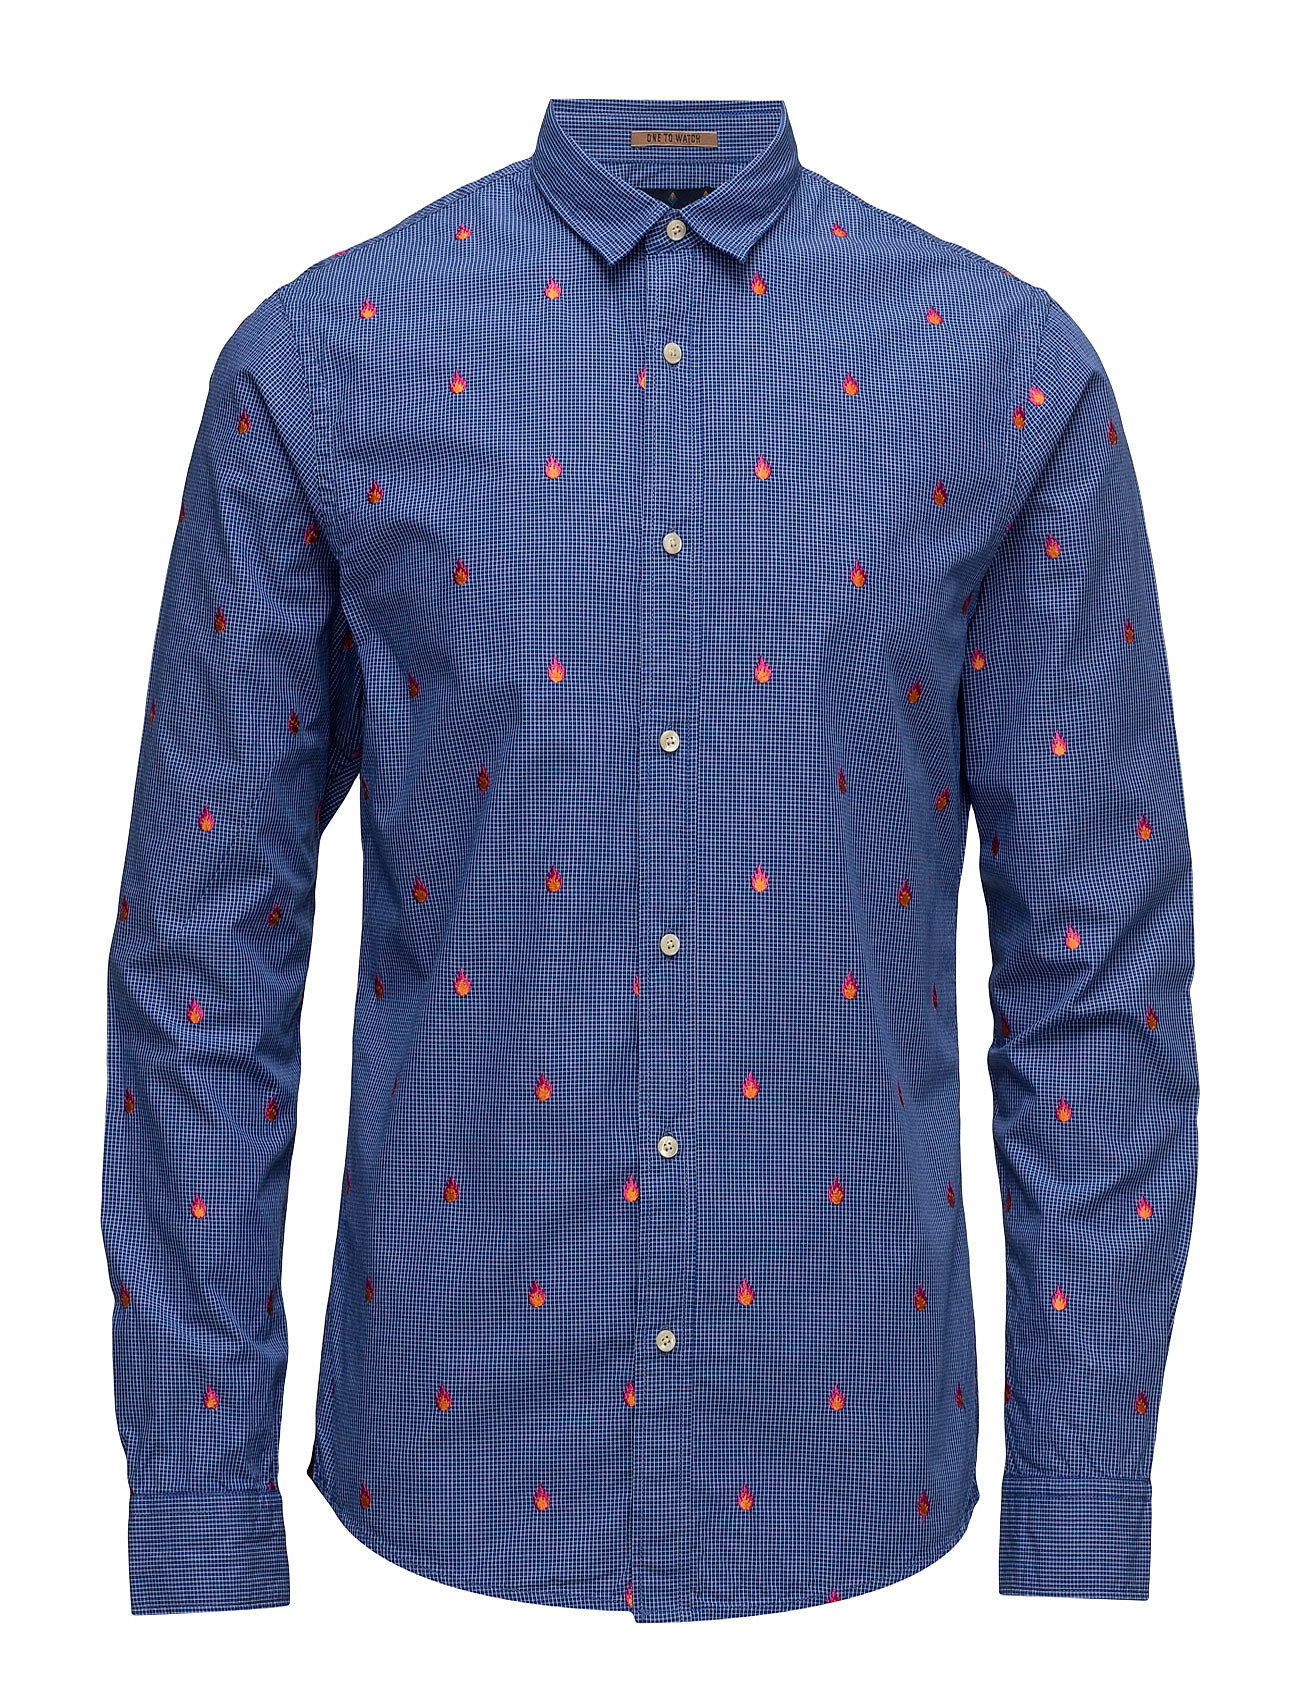 Longsleeve Shirt With All-Over Embroidery Scotch & Soda Business til Herrer i